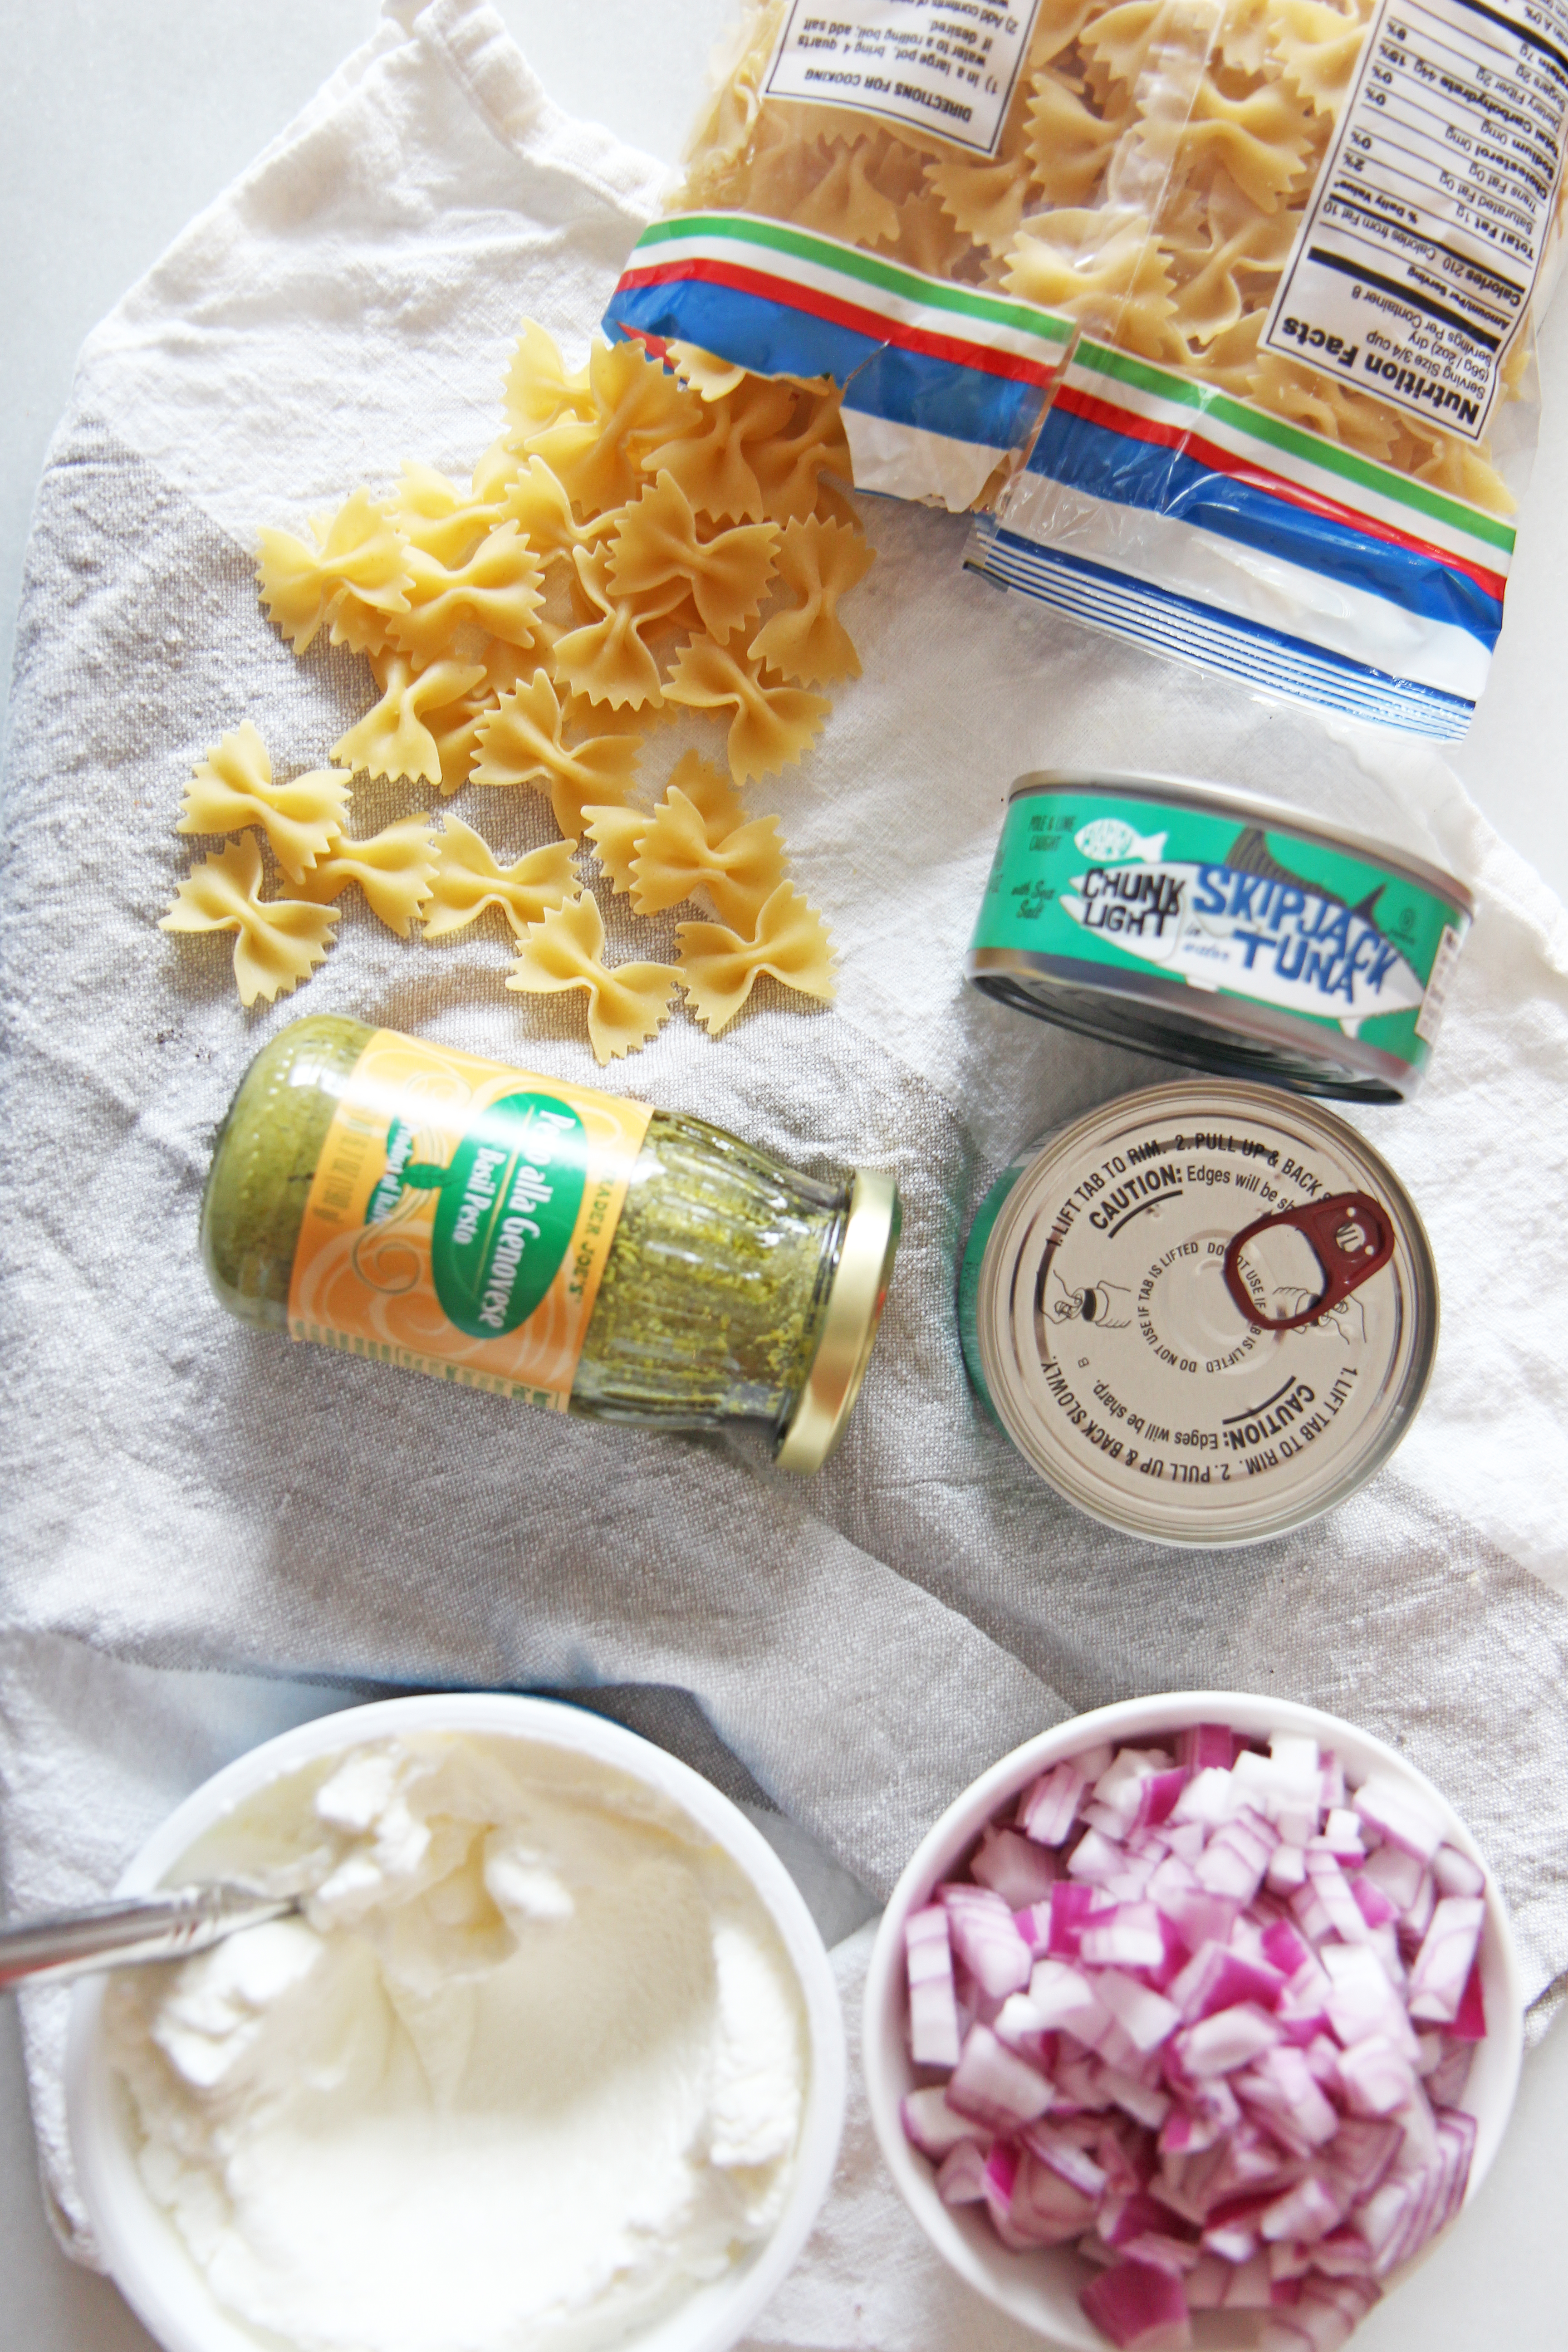 Pesto Tuna Pasta Salad (5 Ingredient Panty Recipe). With only 5 ingredients from your pantry and fridge you can have dinner in 20 minutes. Canned tuna, onions, Greek Yogurt, pasta, and pesto are the ingredients for this recipe. Happy Cooking! #pantryingredients #cannedtuna